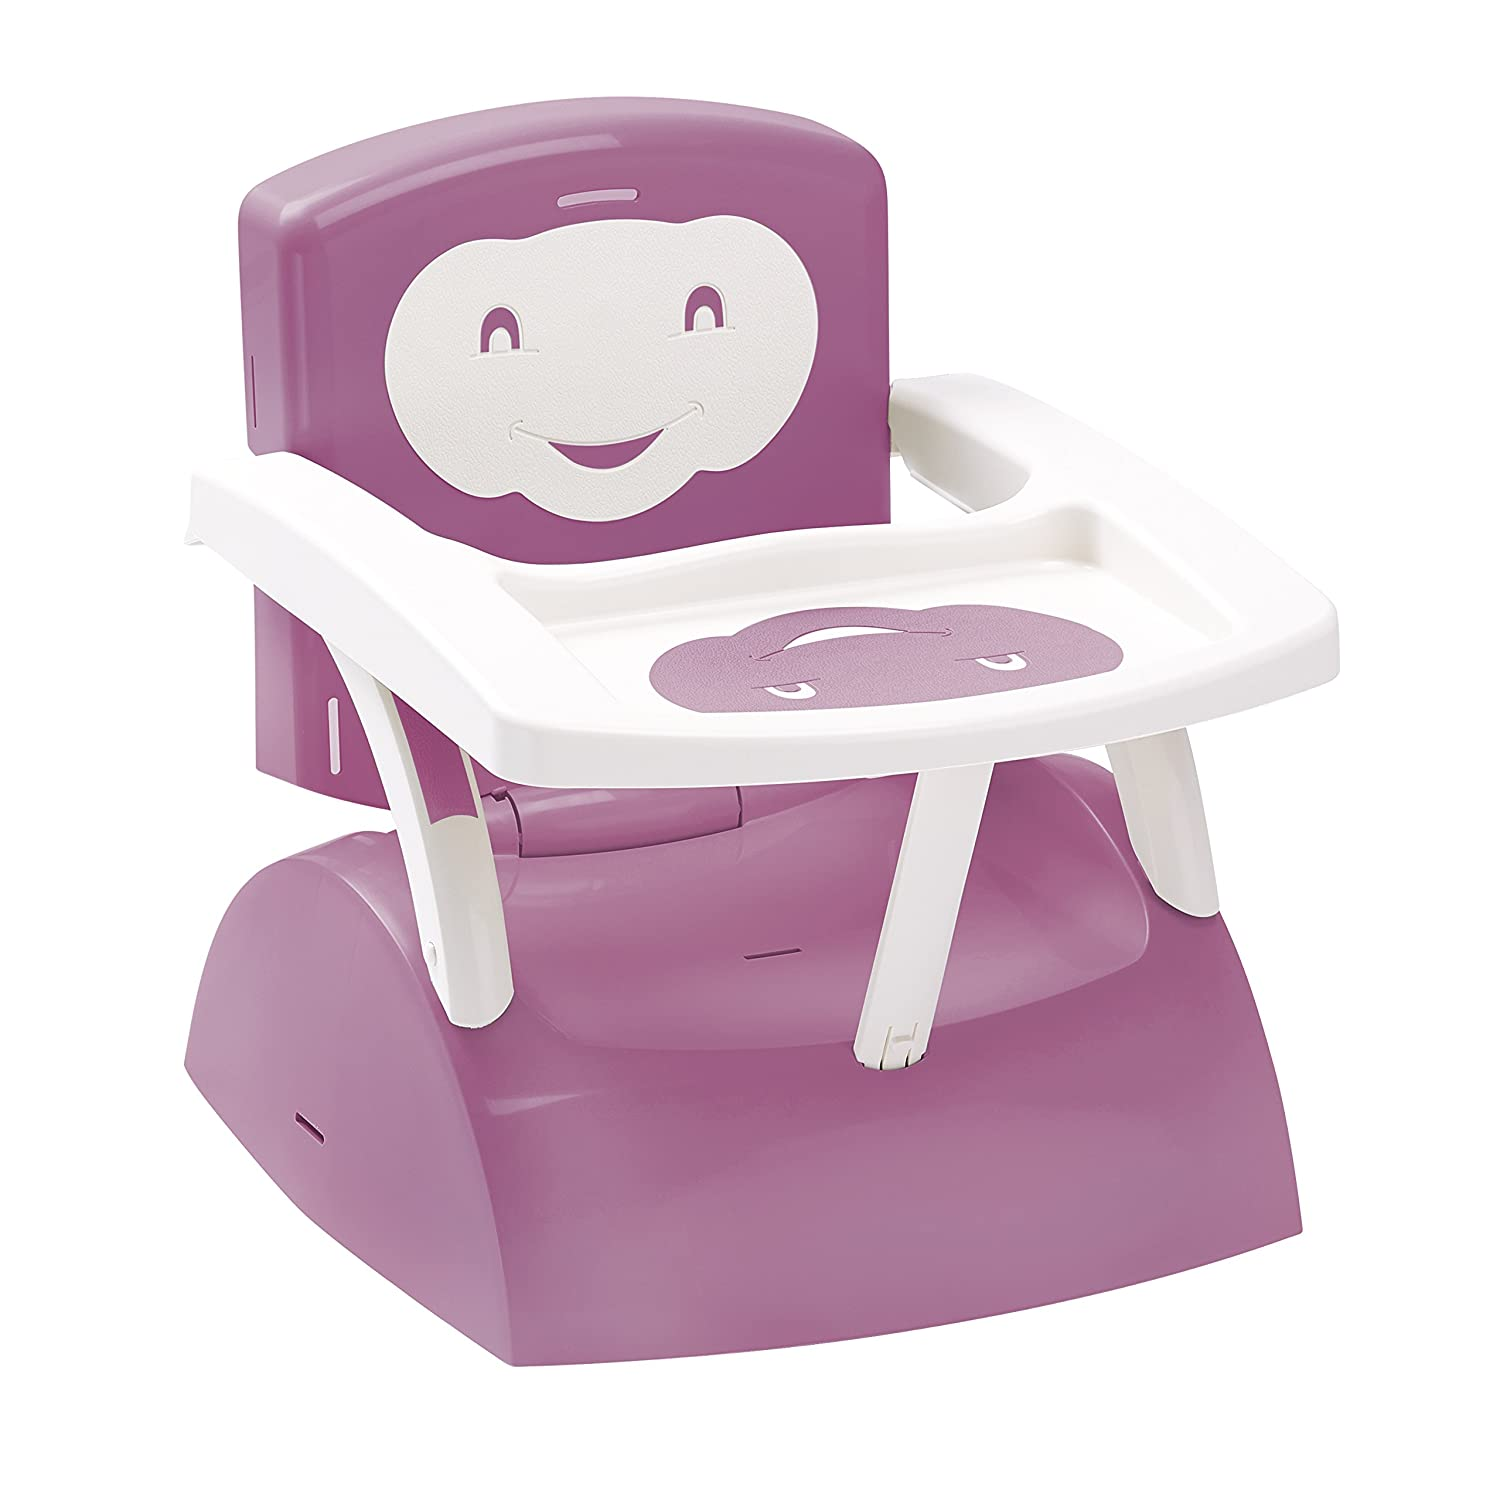 THERMOBABY Babytop Rehausseur de Chaise Rose Orchidée THHHJ 2198552